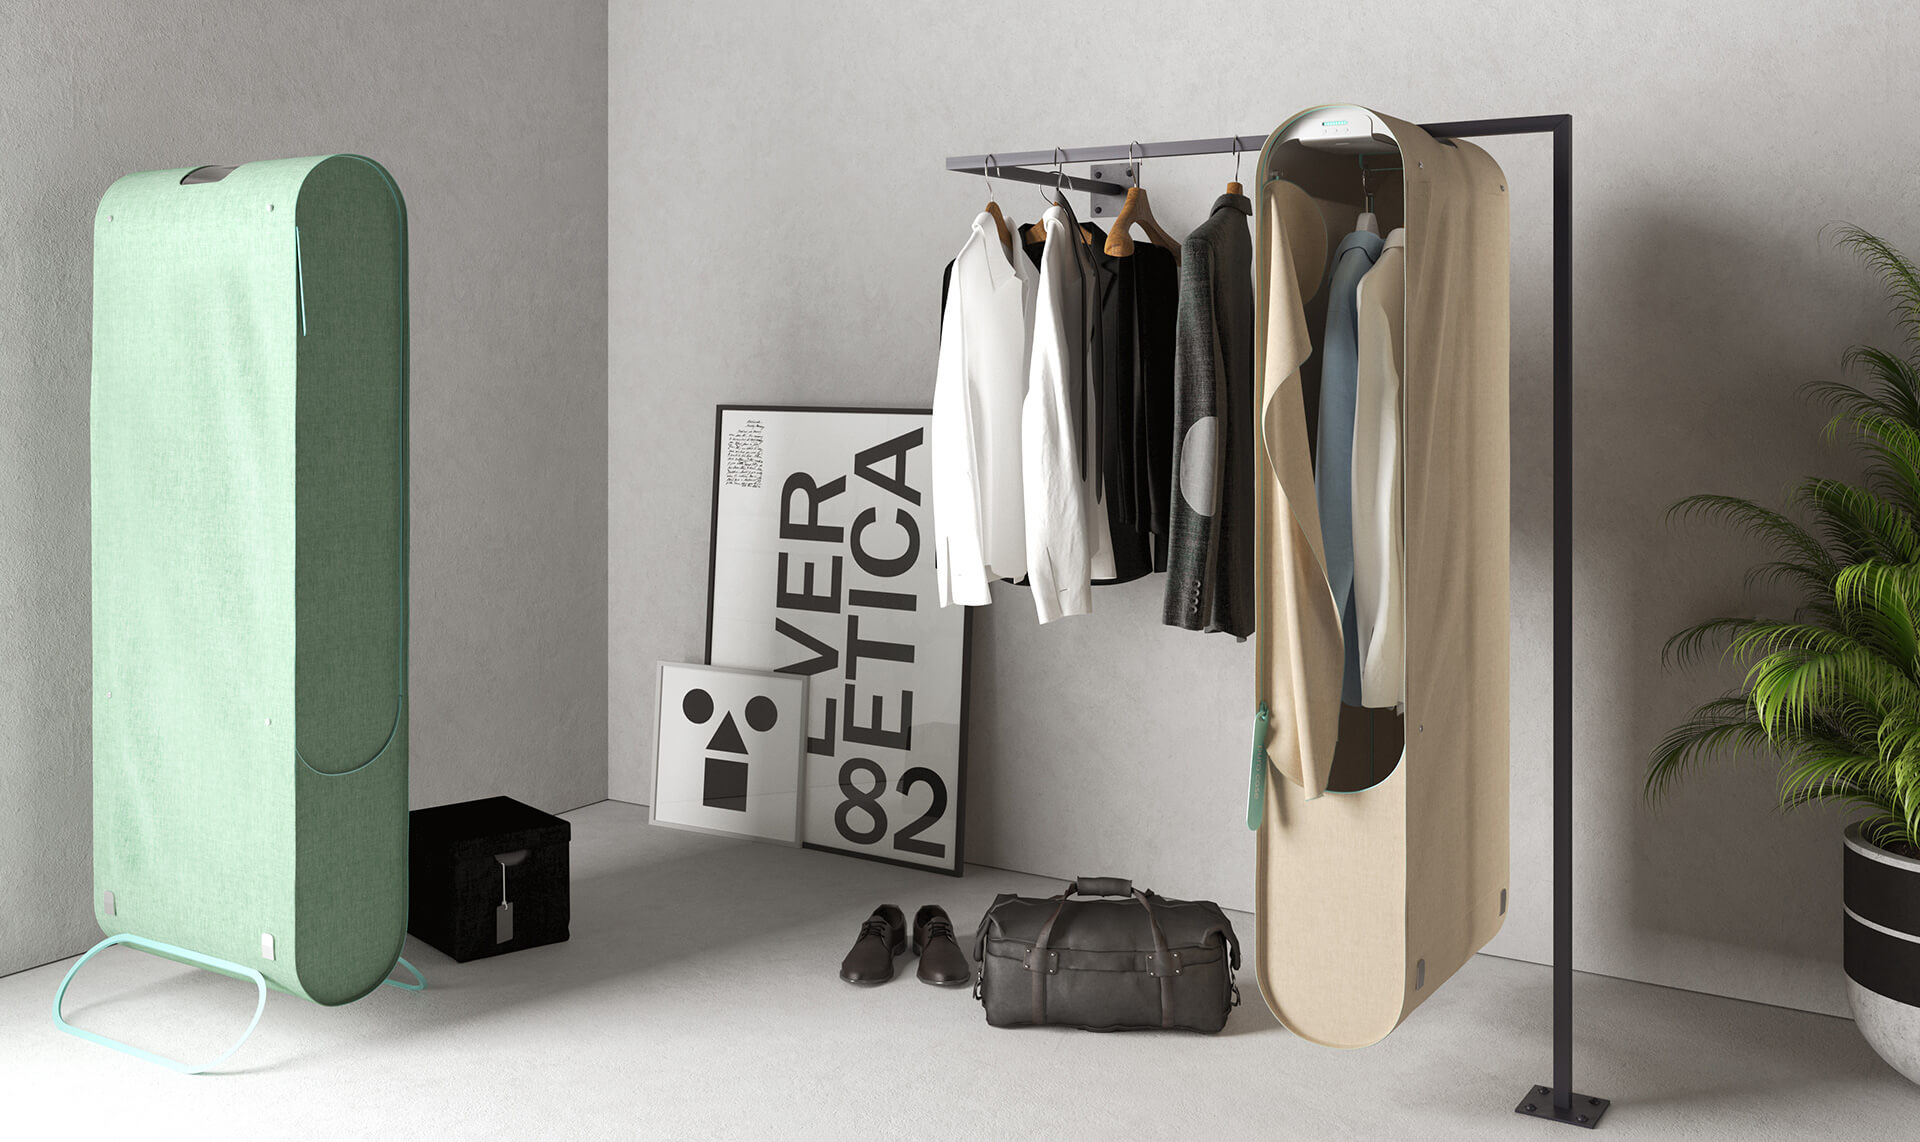 Pura-Case is a portable wardrobe purifier that uses ozone to sanitise fabric | Pura-Case by Carlo Ratti Associati | STIRworld